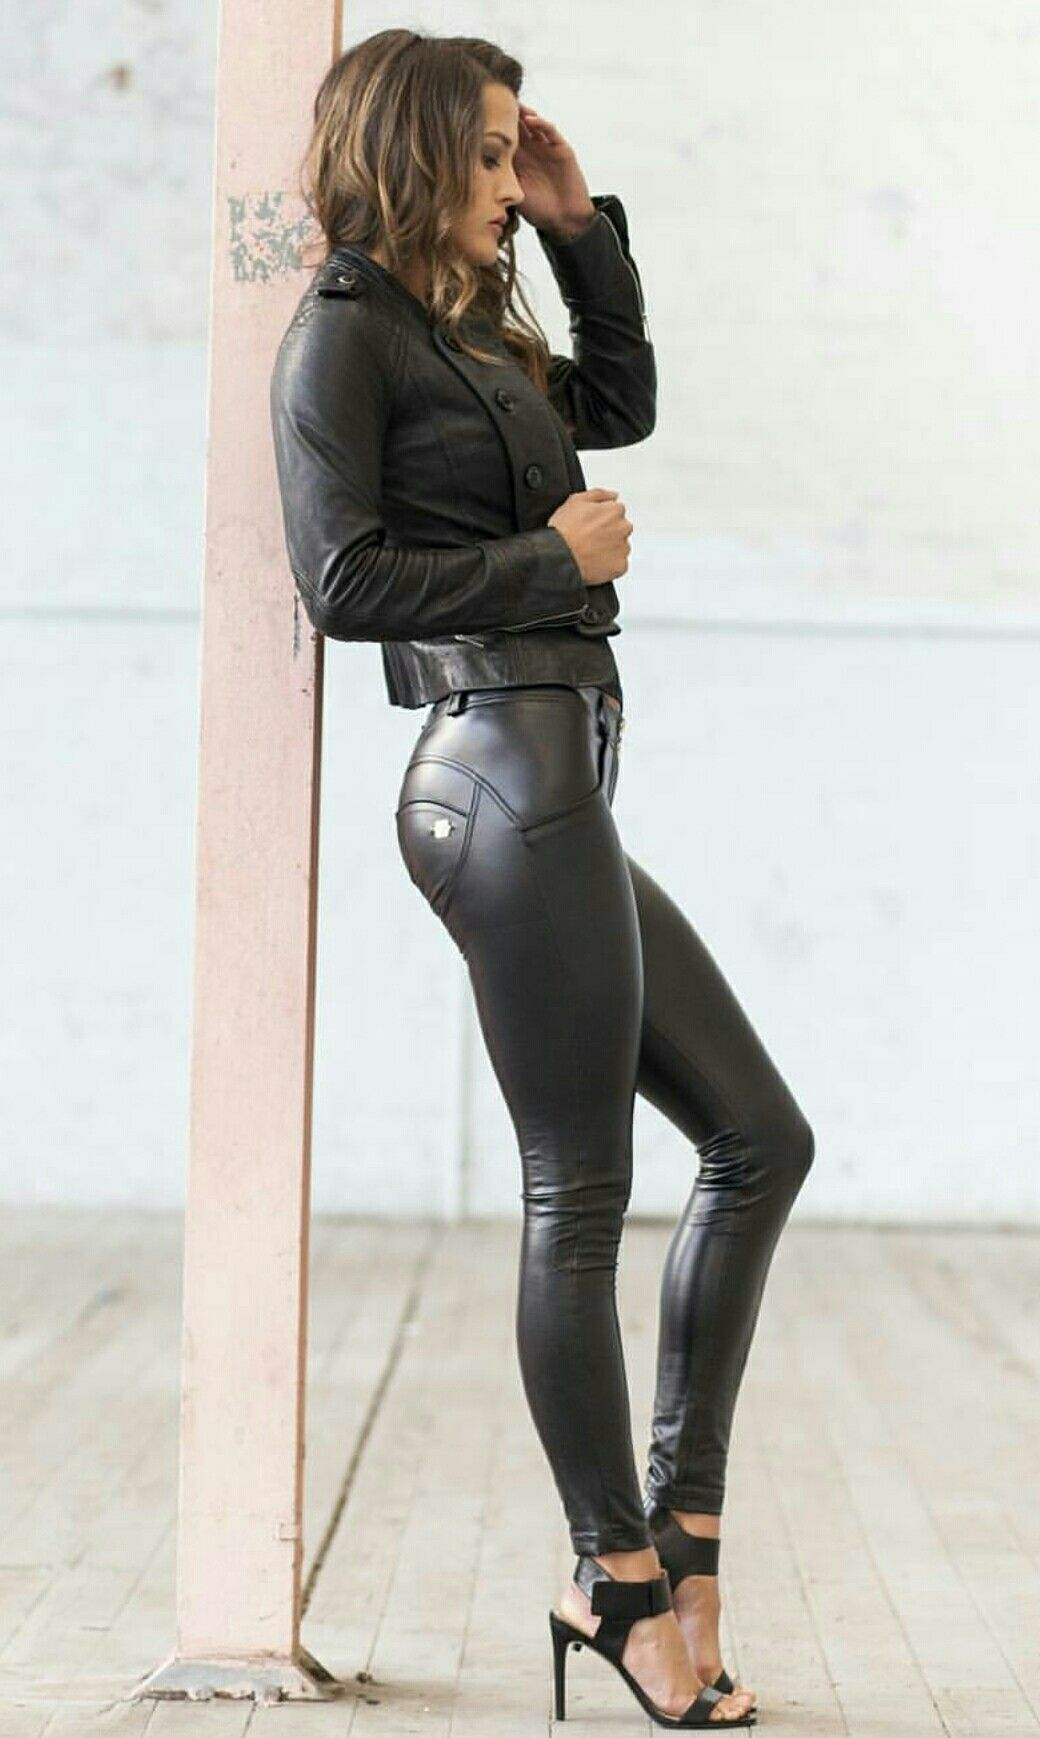 Lederlady ❤ | Leather pants women, Leather fashion, Shiny